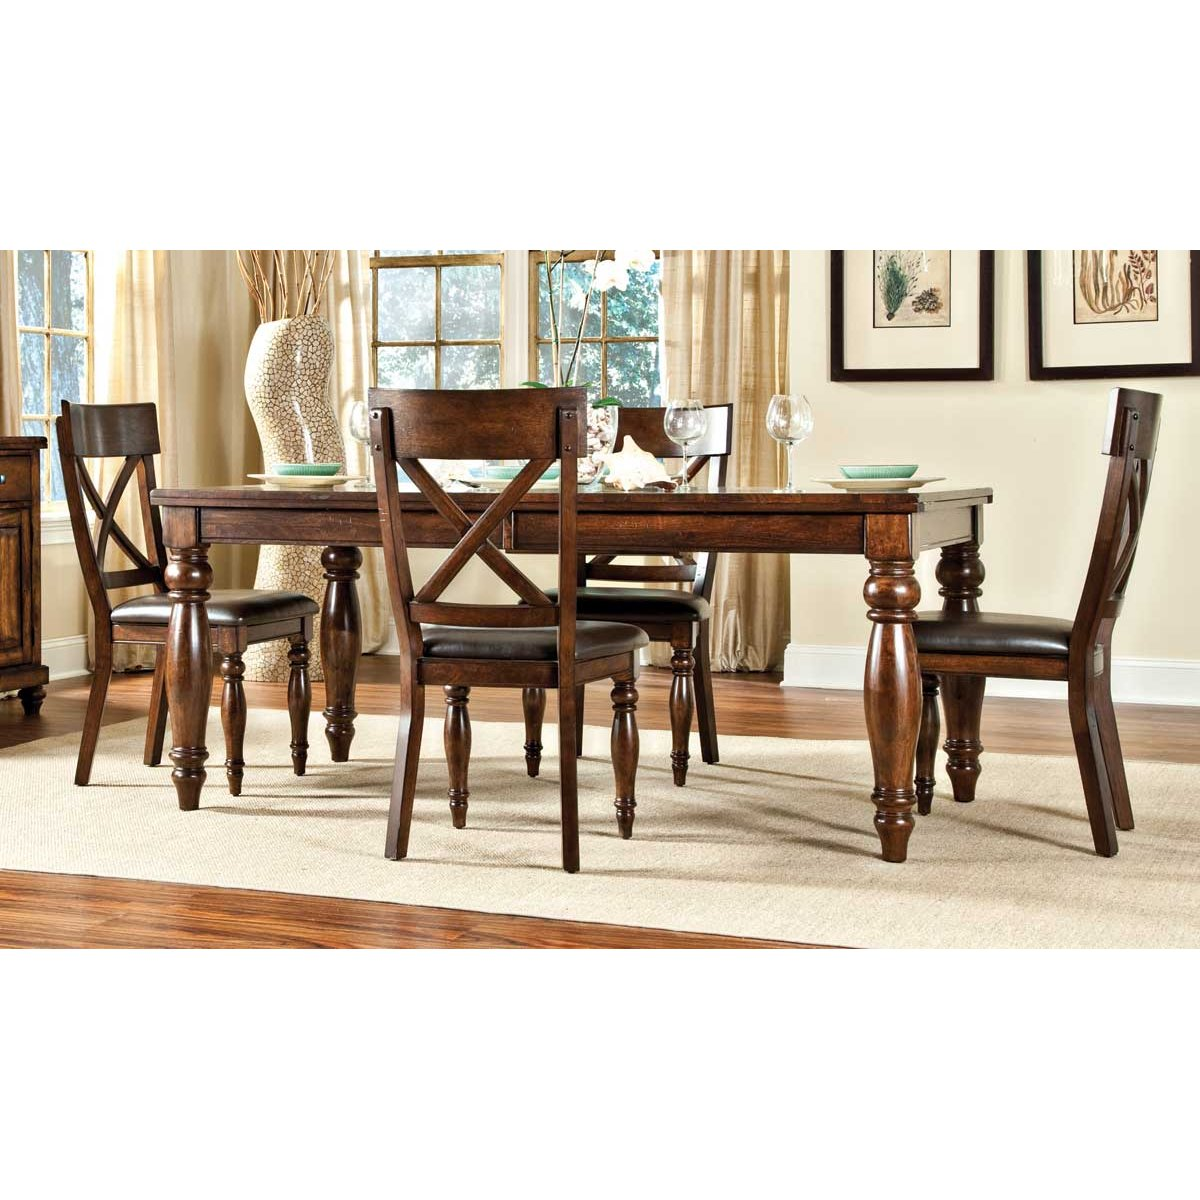 Brown 9 Piece Dining Set with X Back Chairs   Kingston